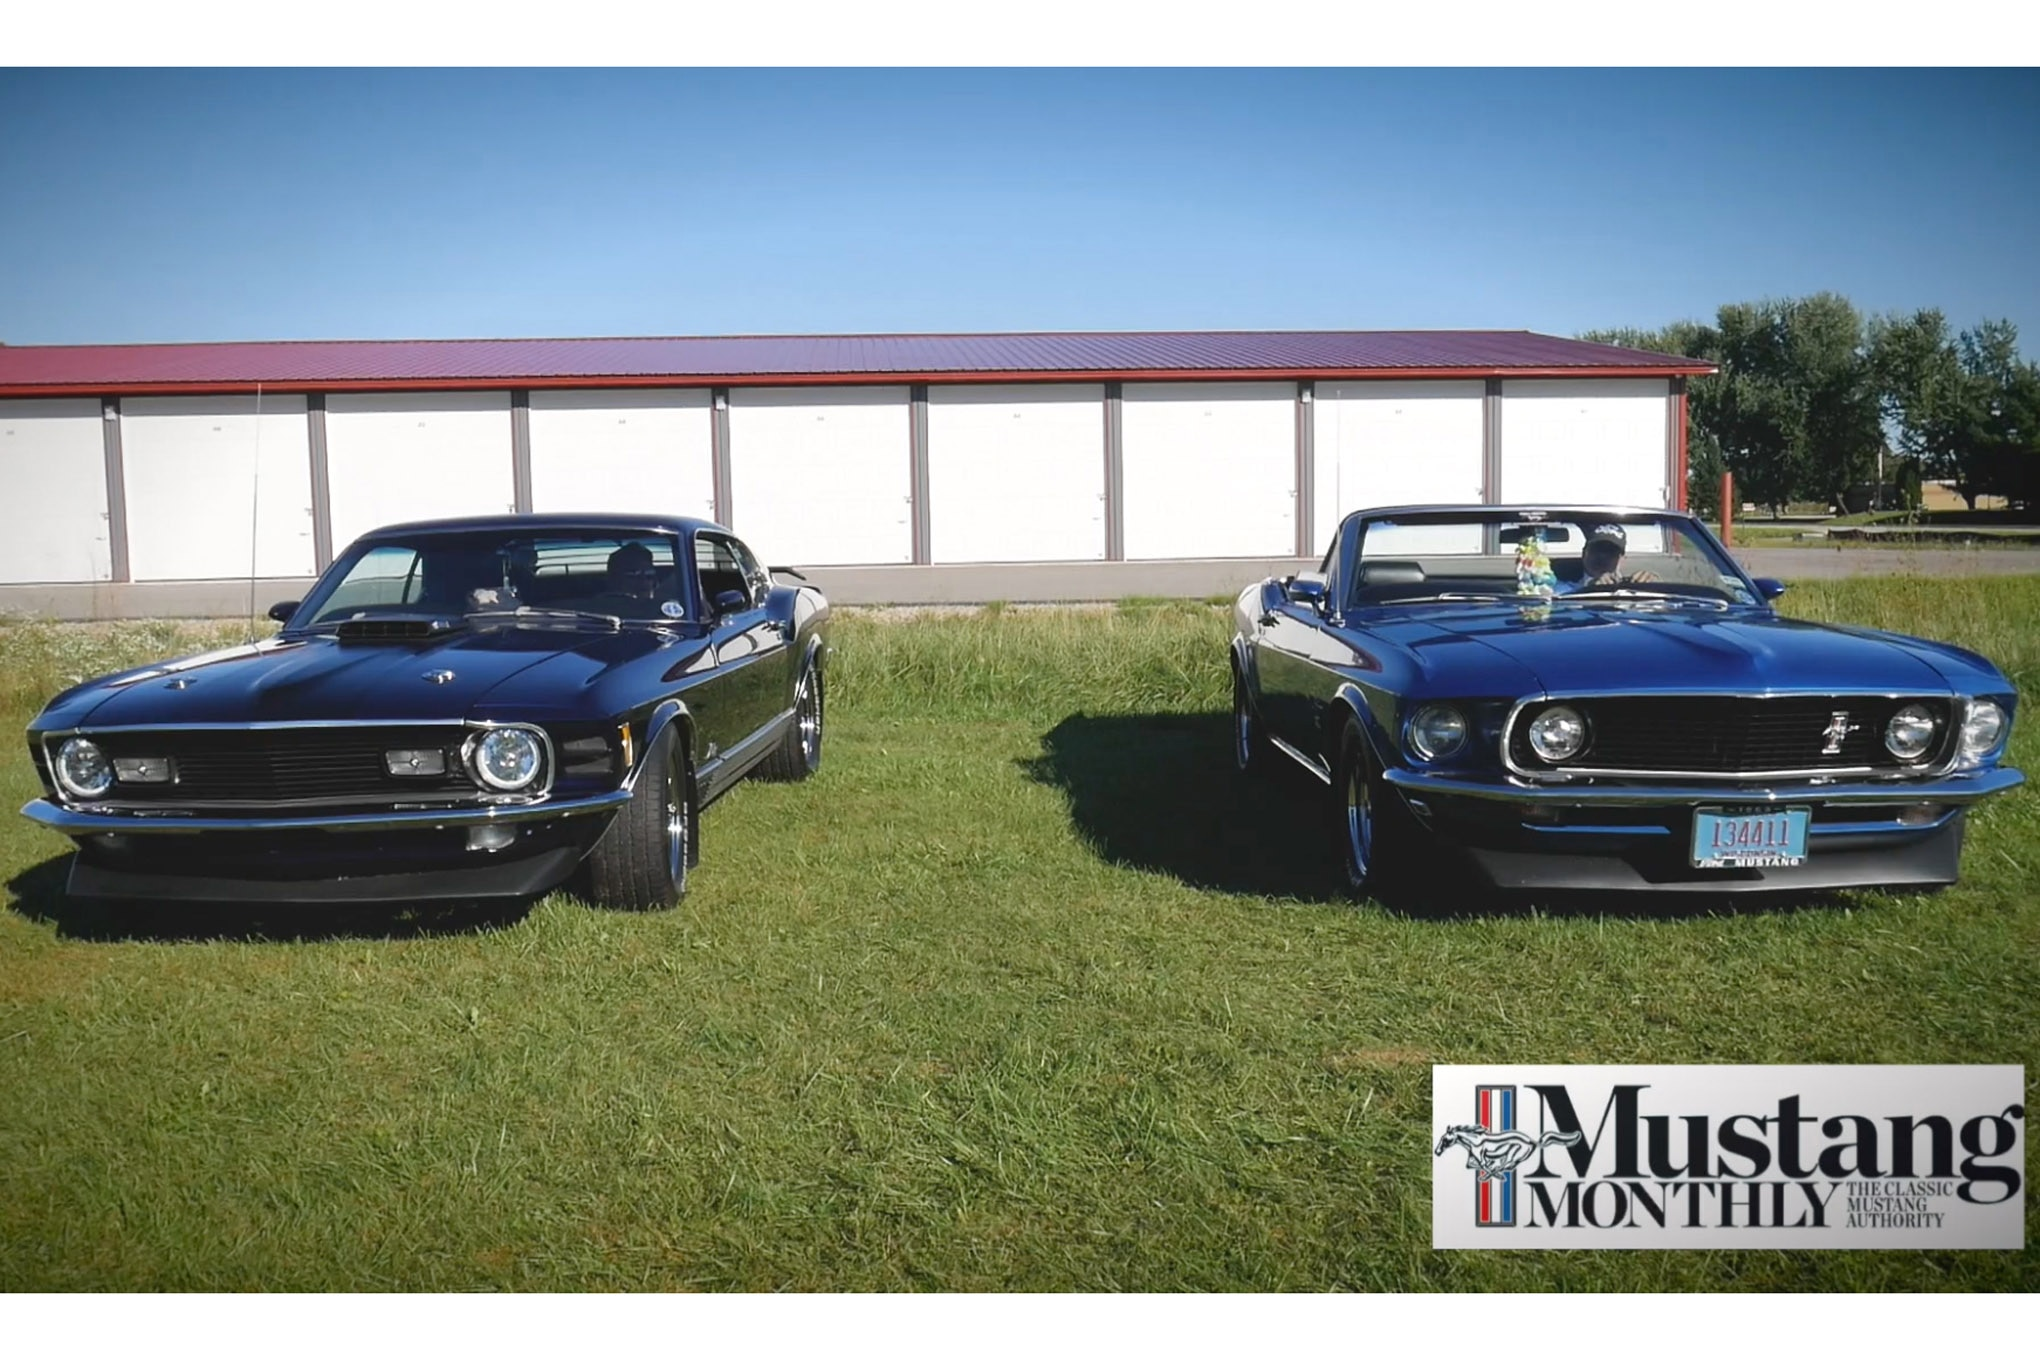 Fierce Ford Friday His Hers Mustangs Lead